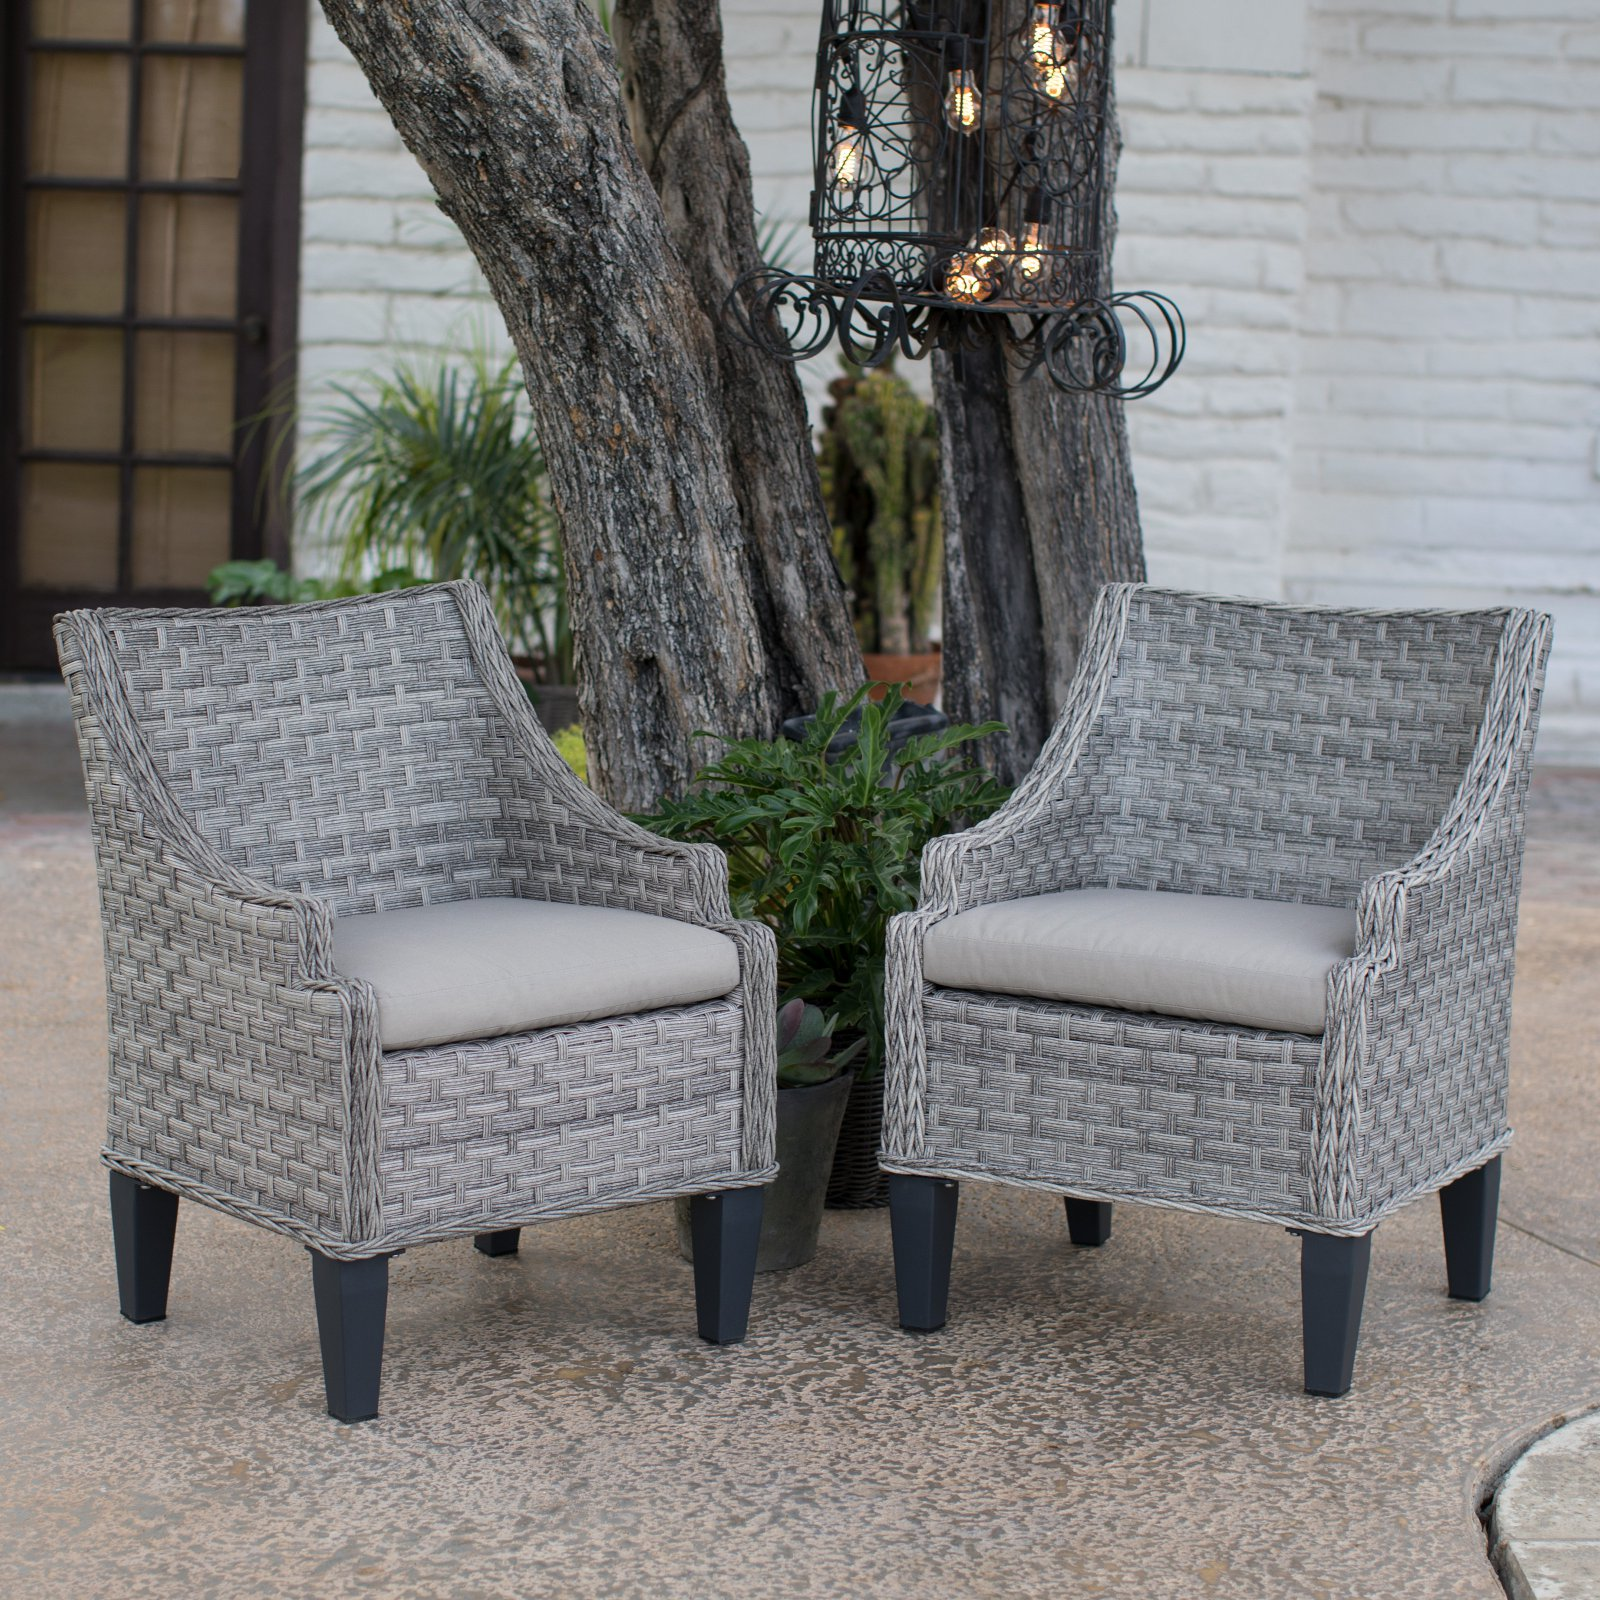 Wicker Outdoor Dining Chairs Belham Living Maven All Weather Wicker Outdoor Dining Chairs Set Of 2